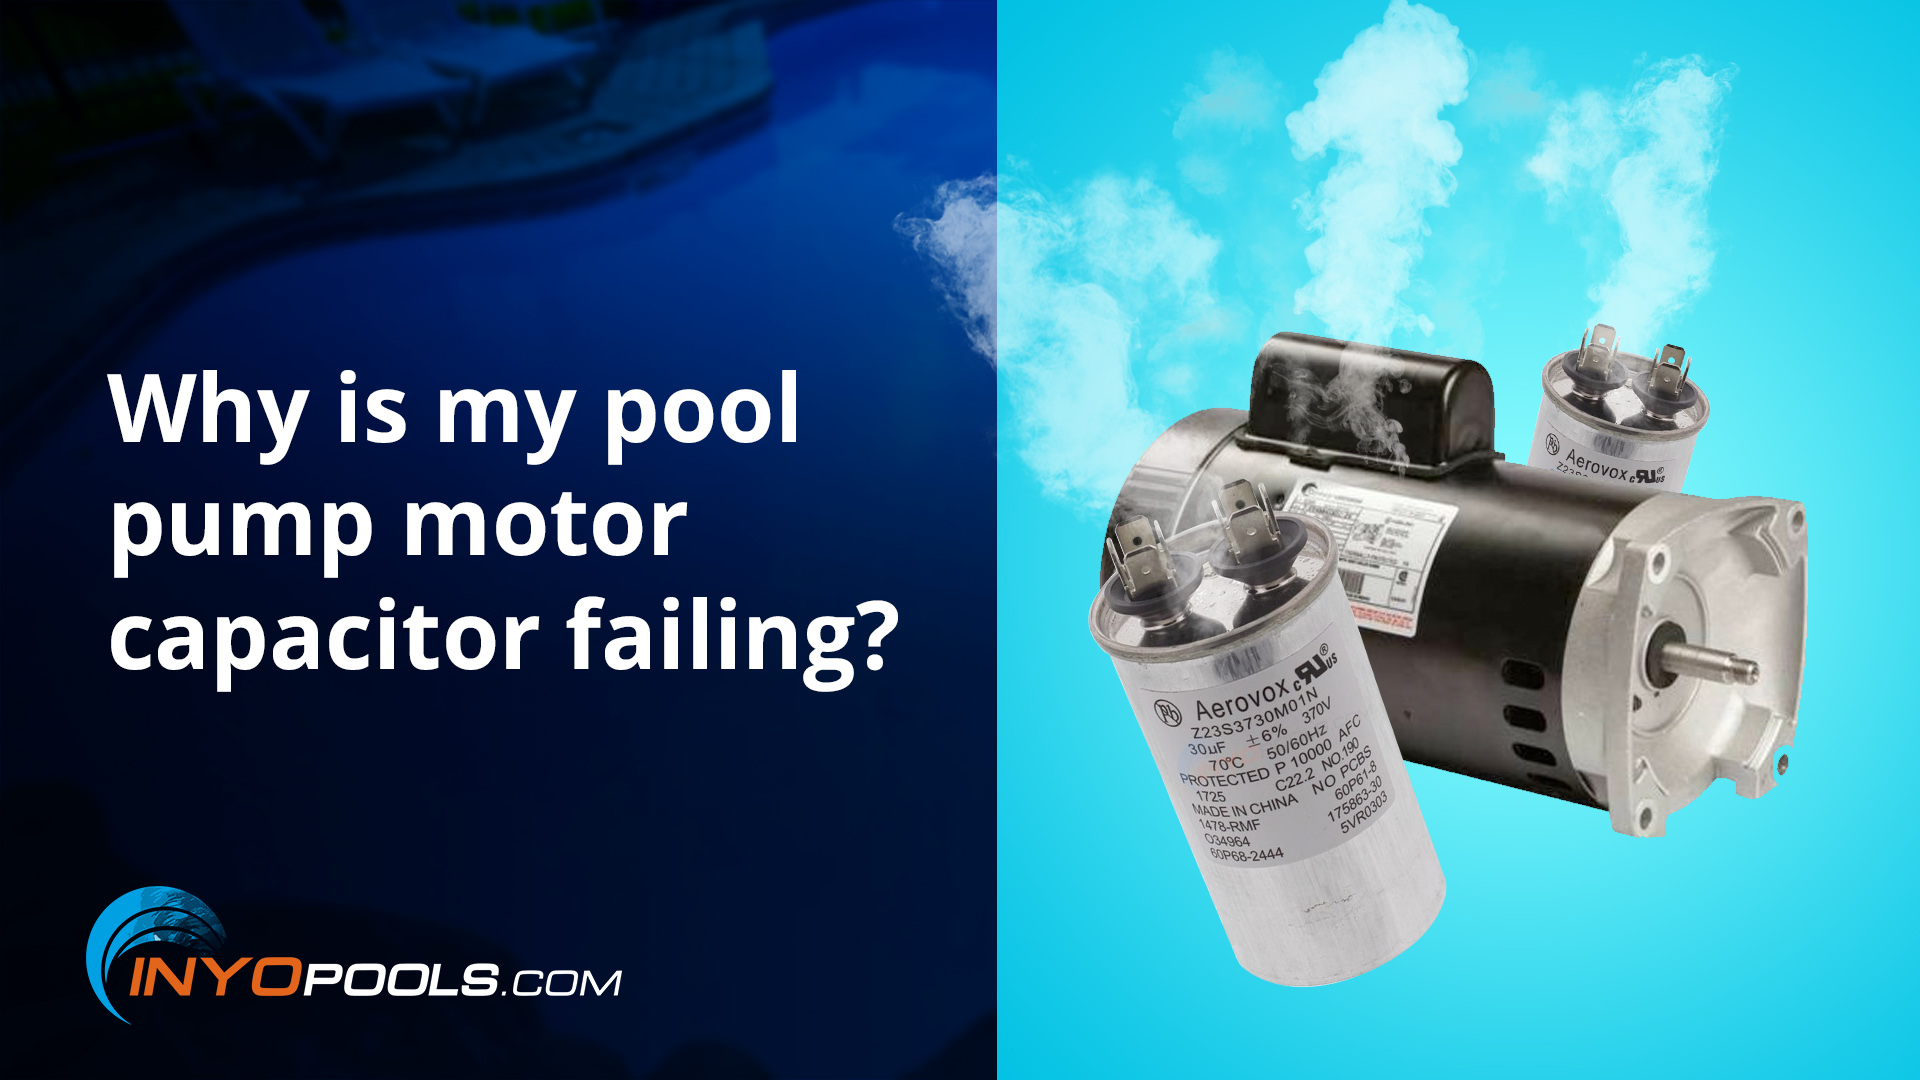 Why is my pool pump motor capacitor failing?